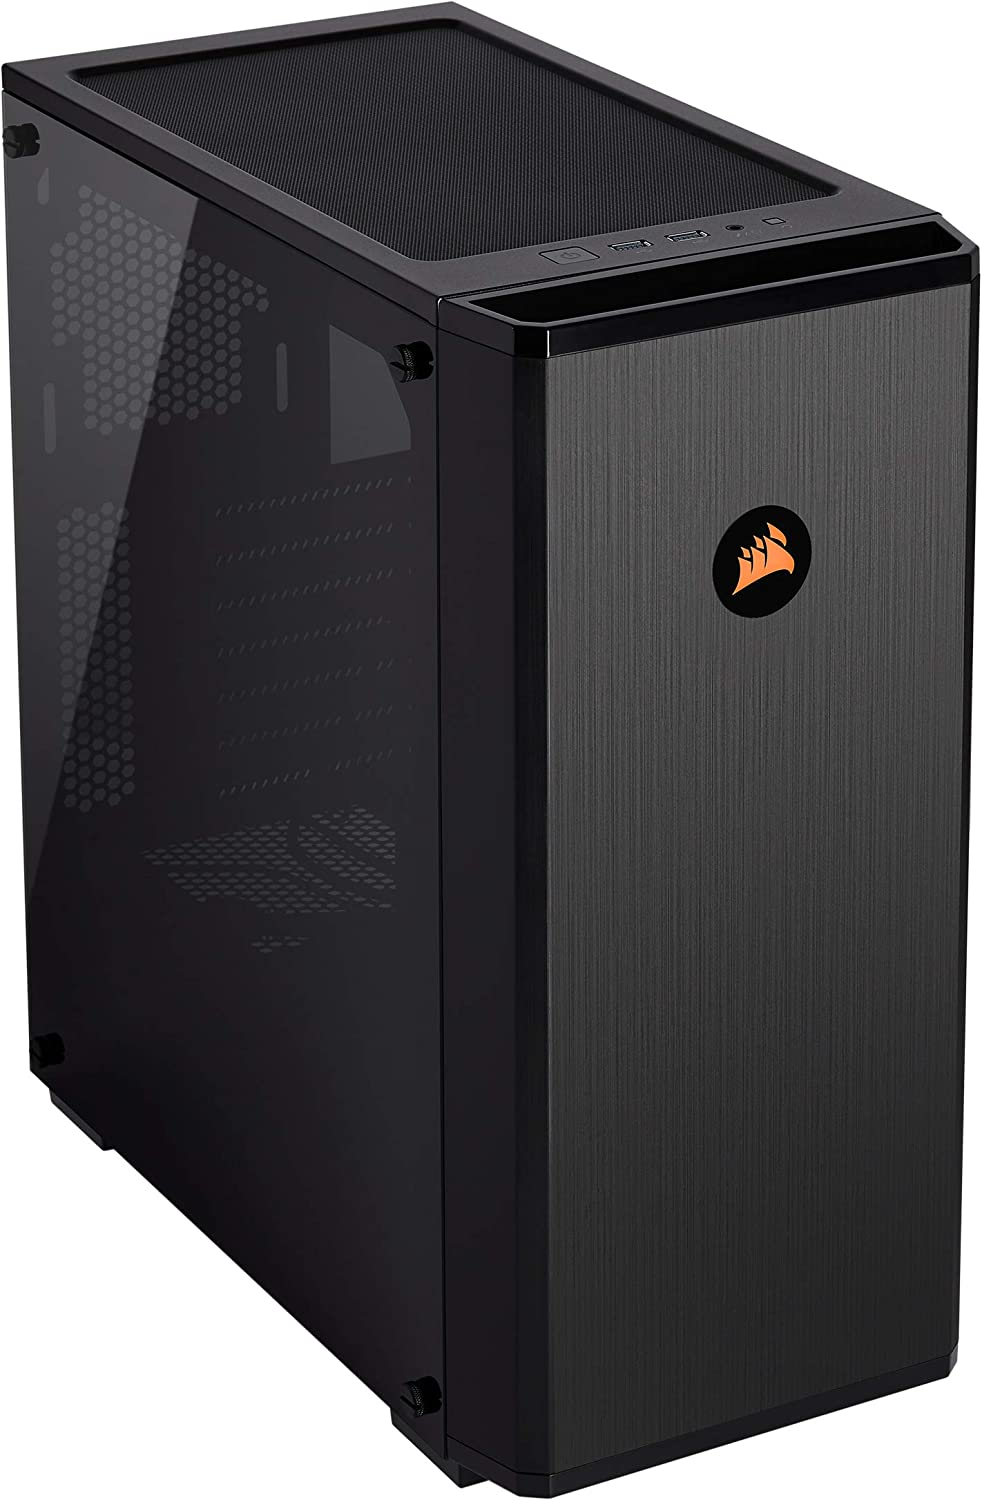 8 PC Case - Best $1000 PC Build 2020